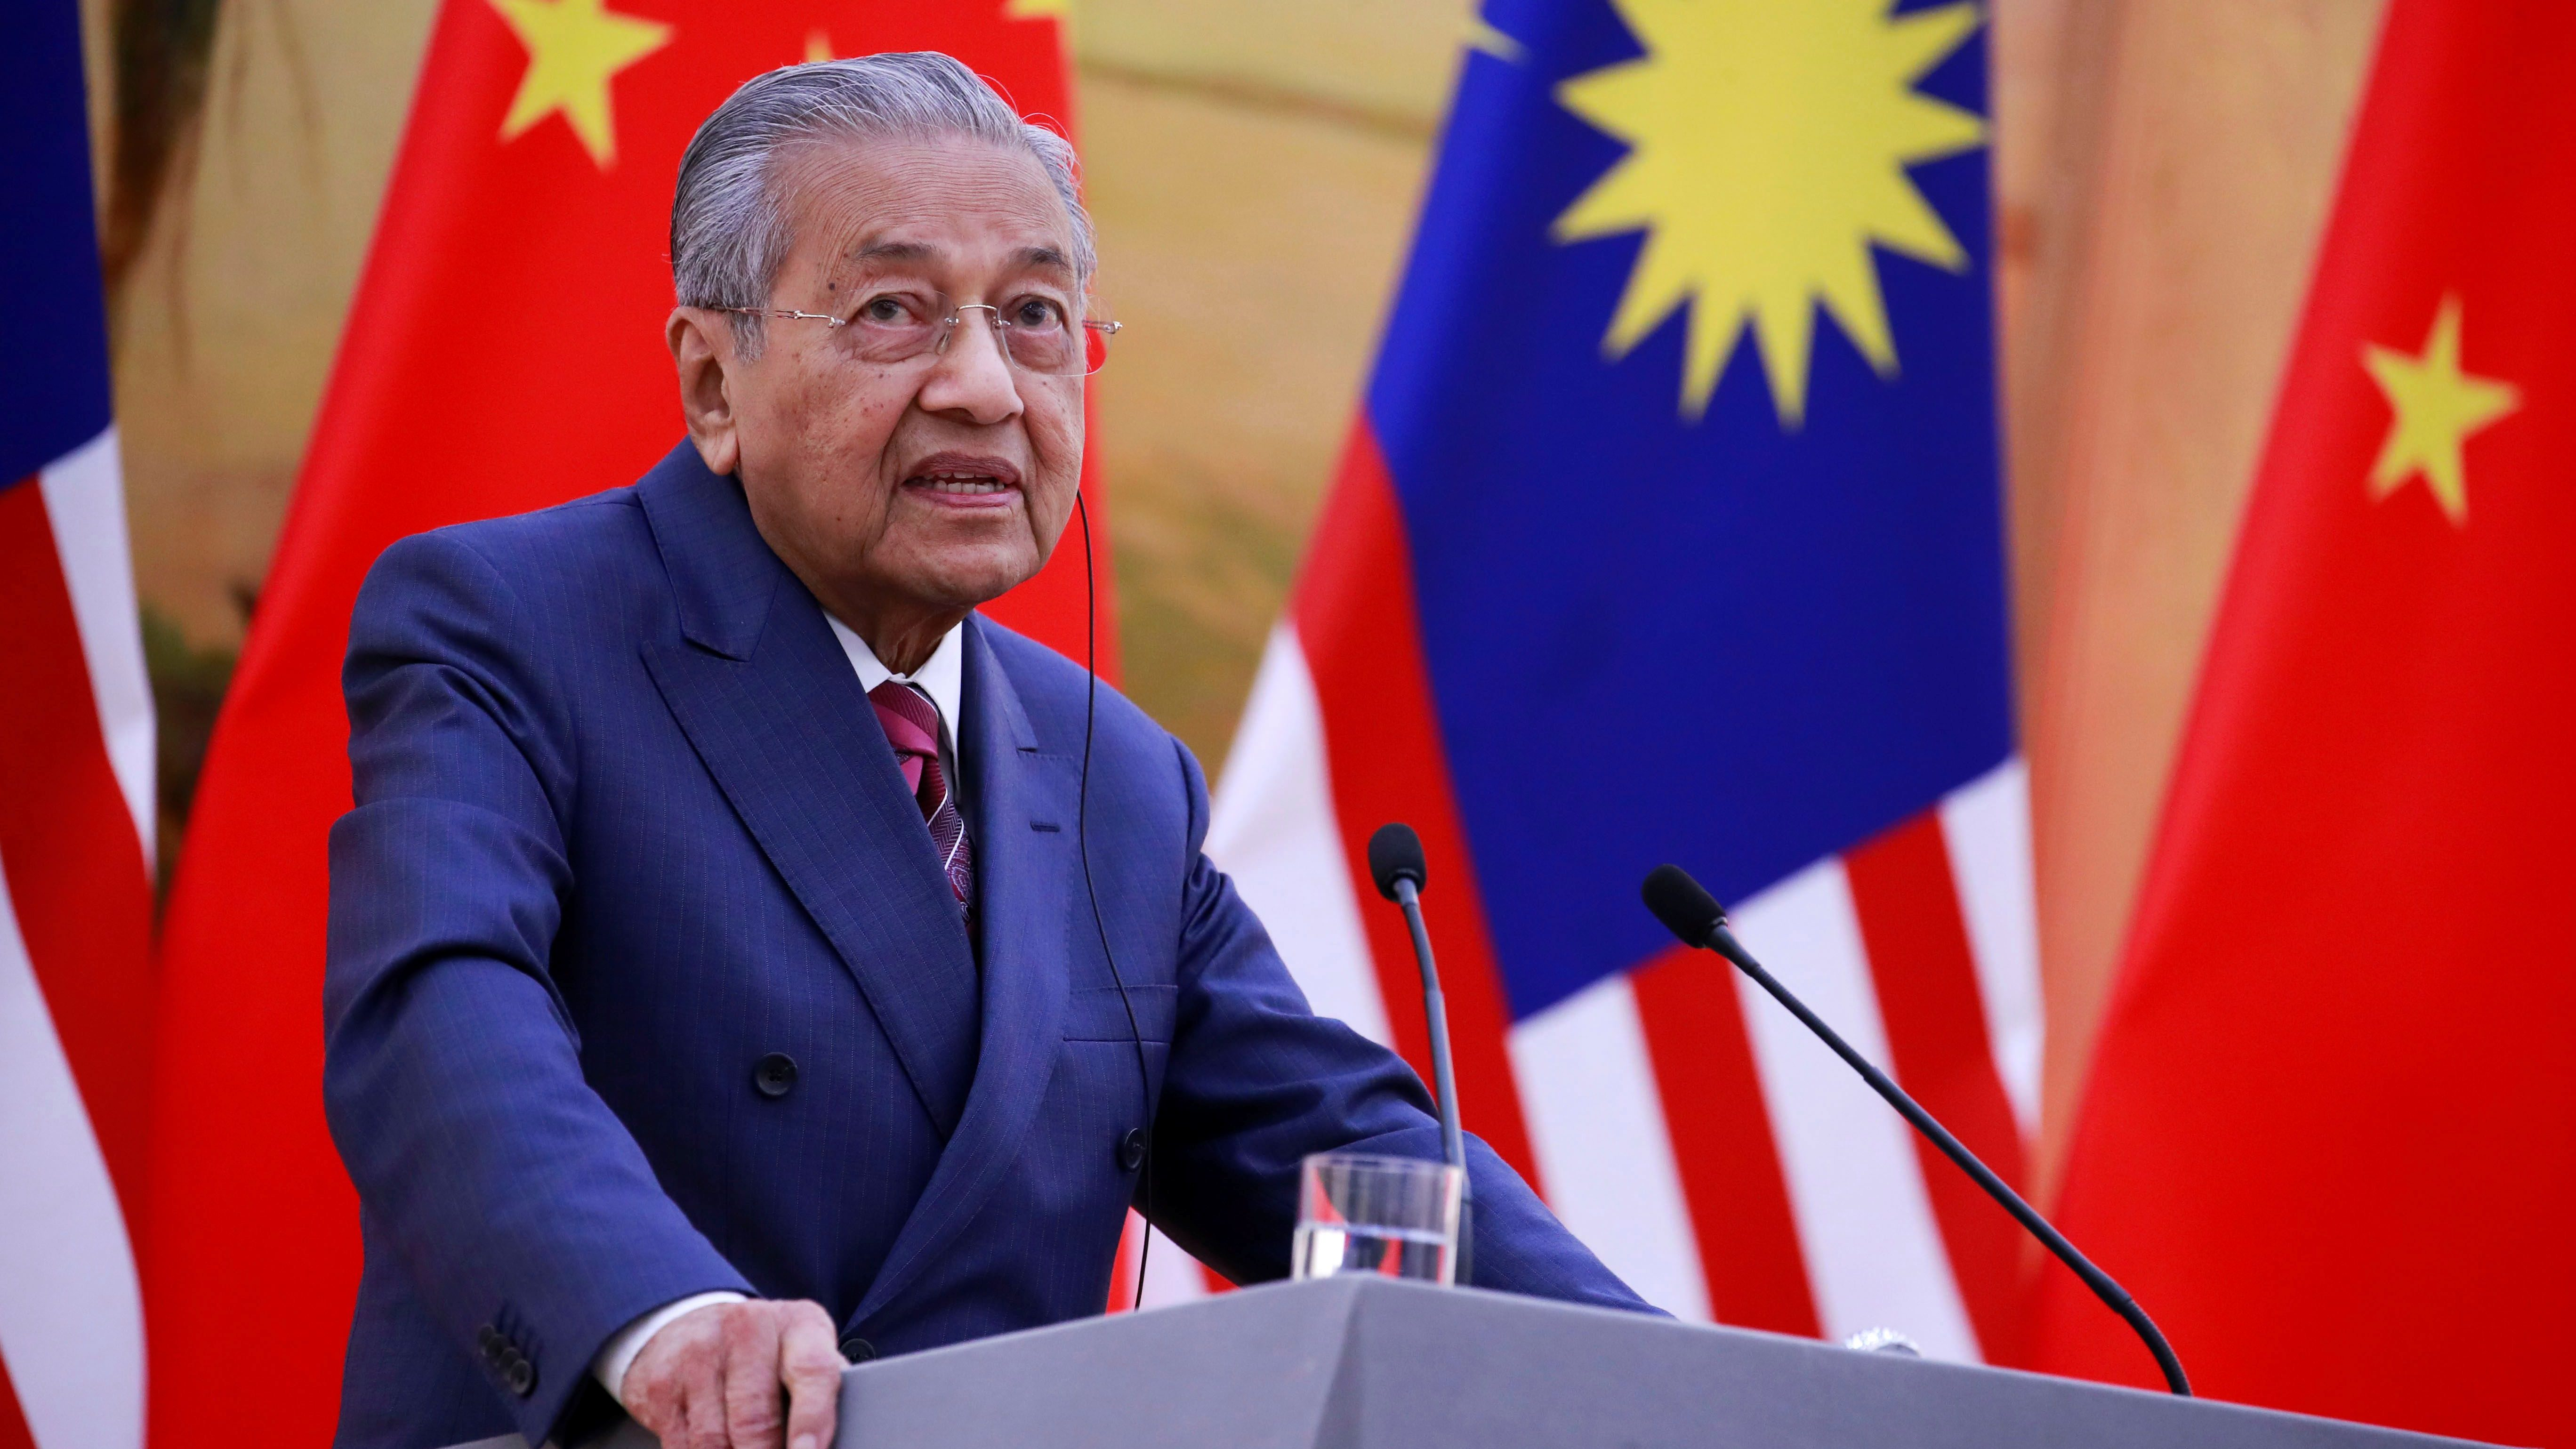 Malaysia's Mahathir Mohamad is 93-years-old